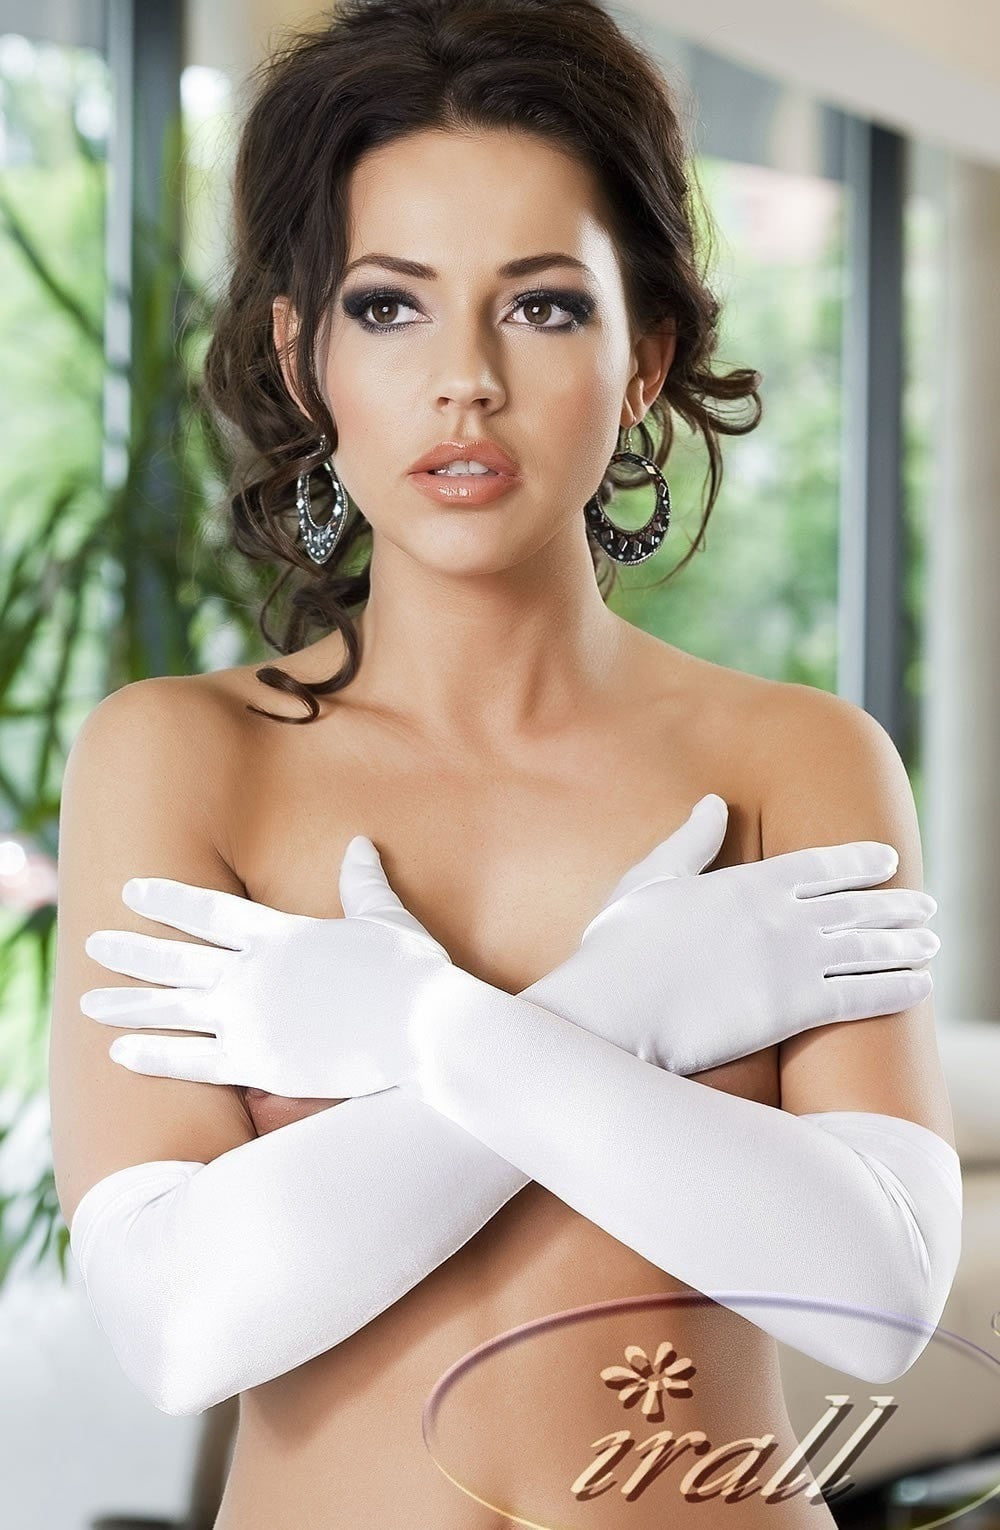 Irall Erotic Astrid Gloves (White) - Gloves - Irall Erotic - Charm and Lace Boutique